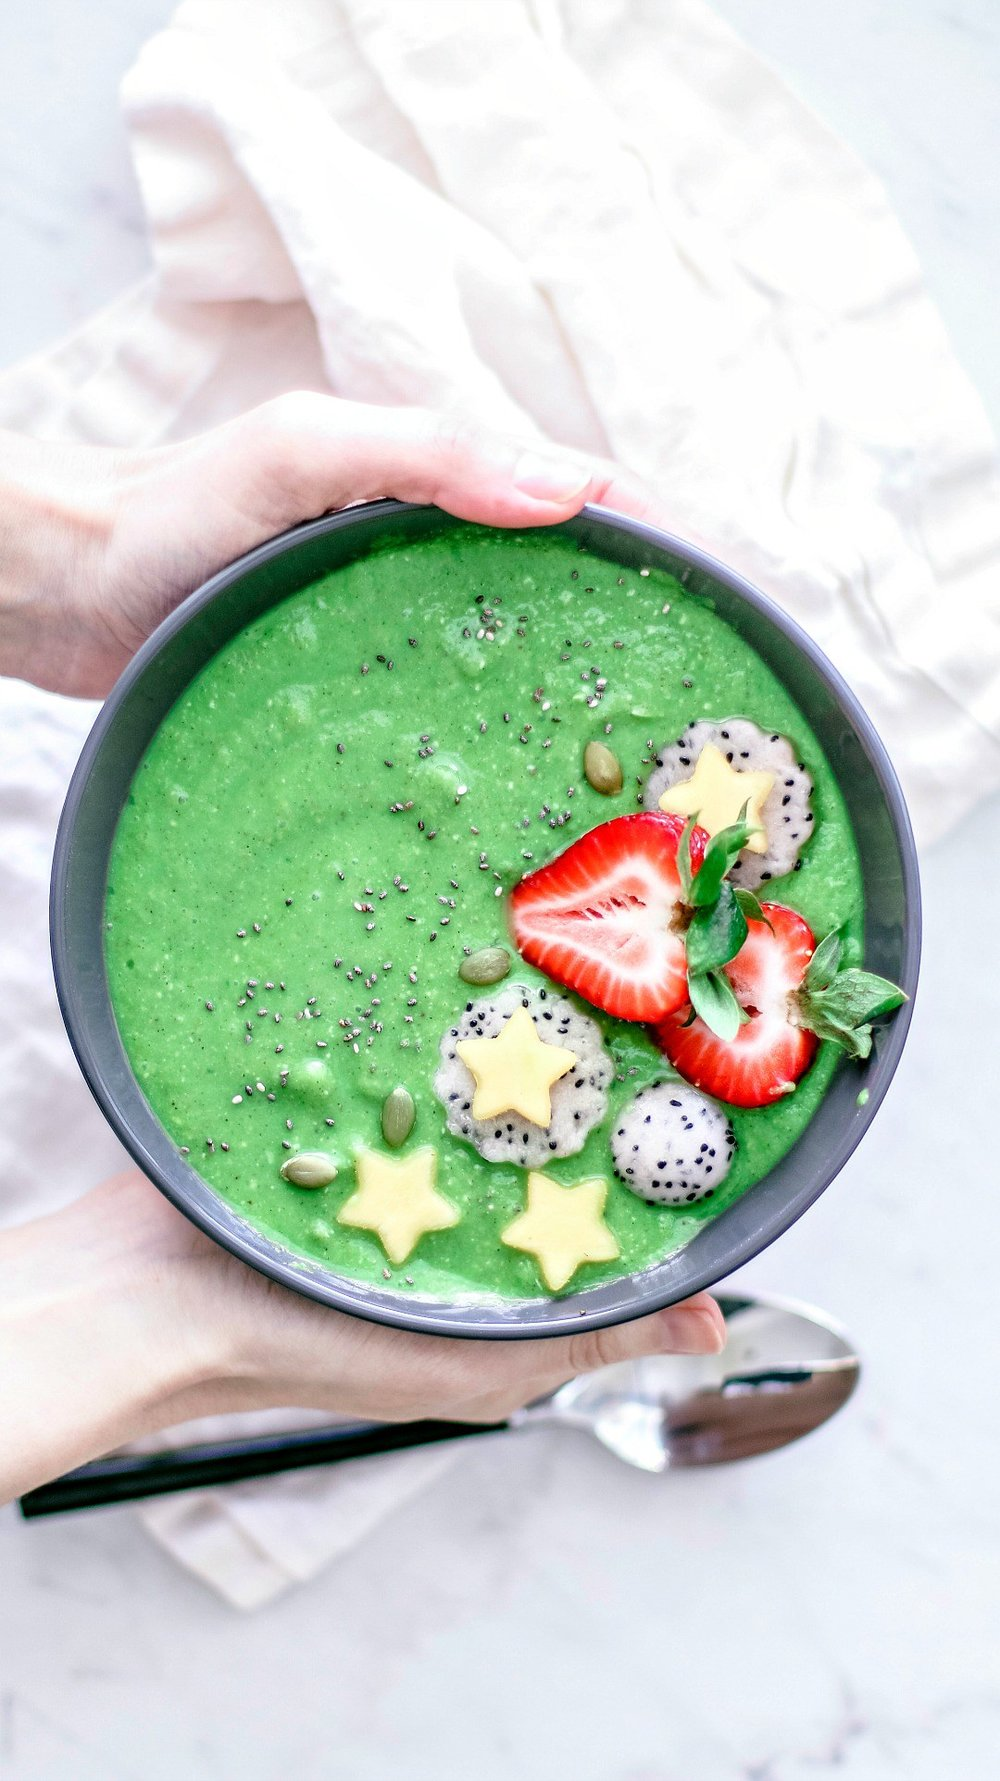 Healthy Green Smoothie Bowl With Broccoli Rabe from Killing Thyme